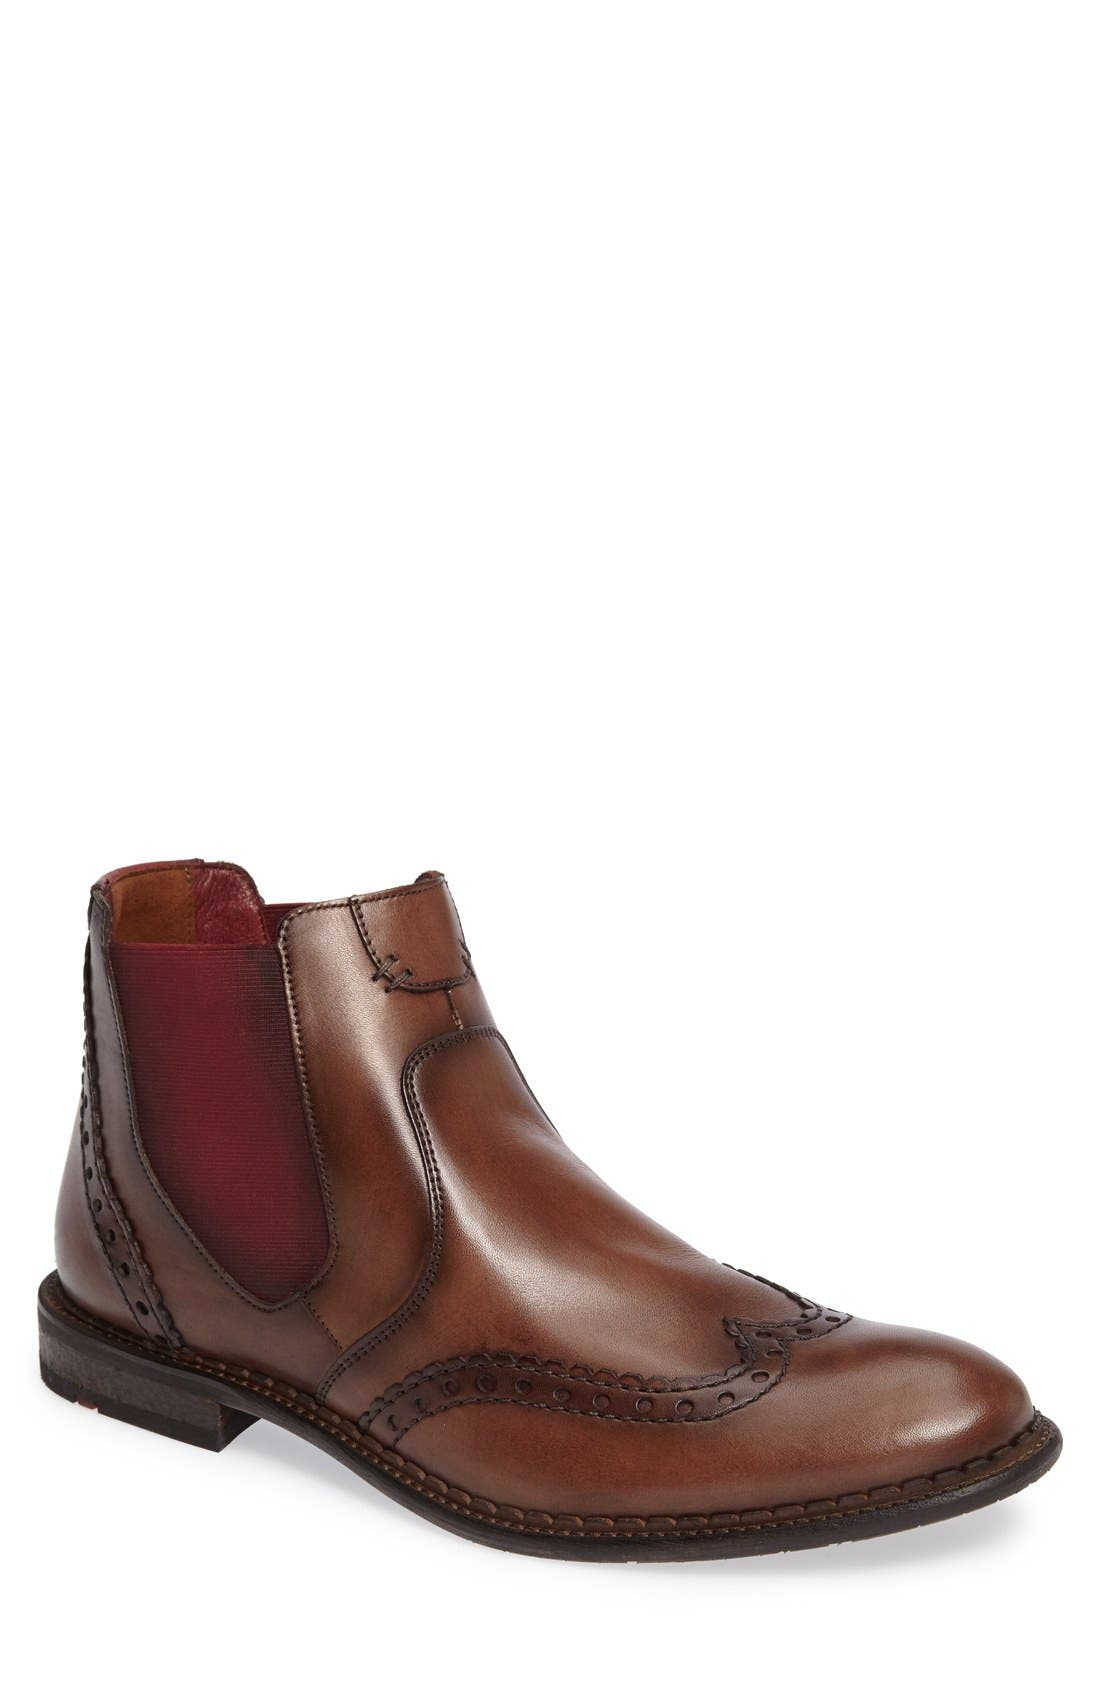 Grenoble Wingtip Chelsea Boot,                         Main,                         color, Tobacco/ Bordo